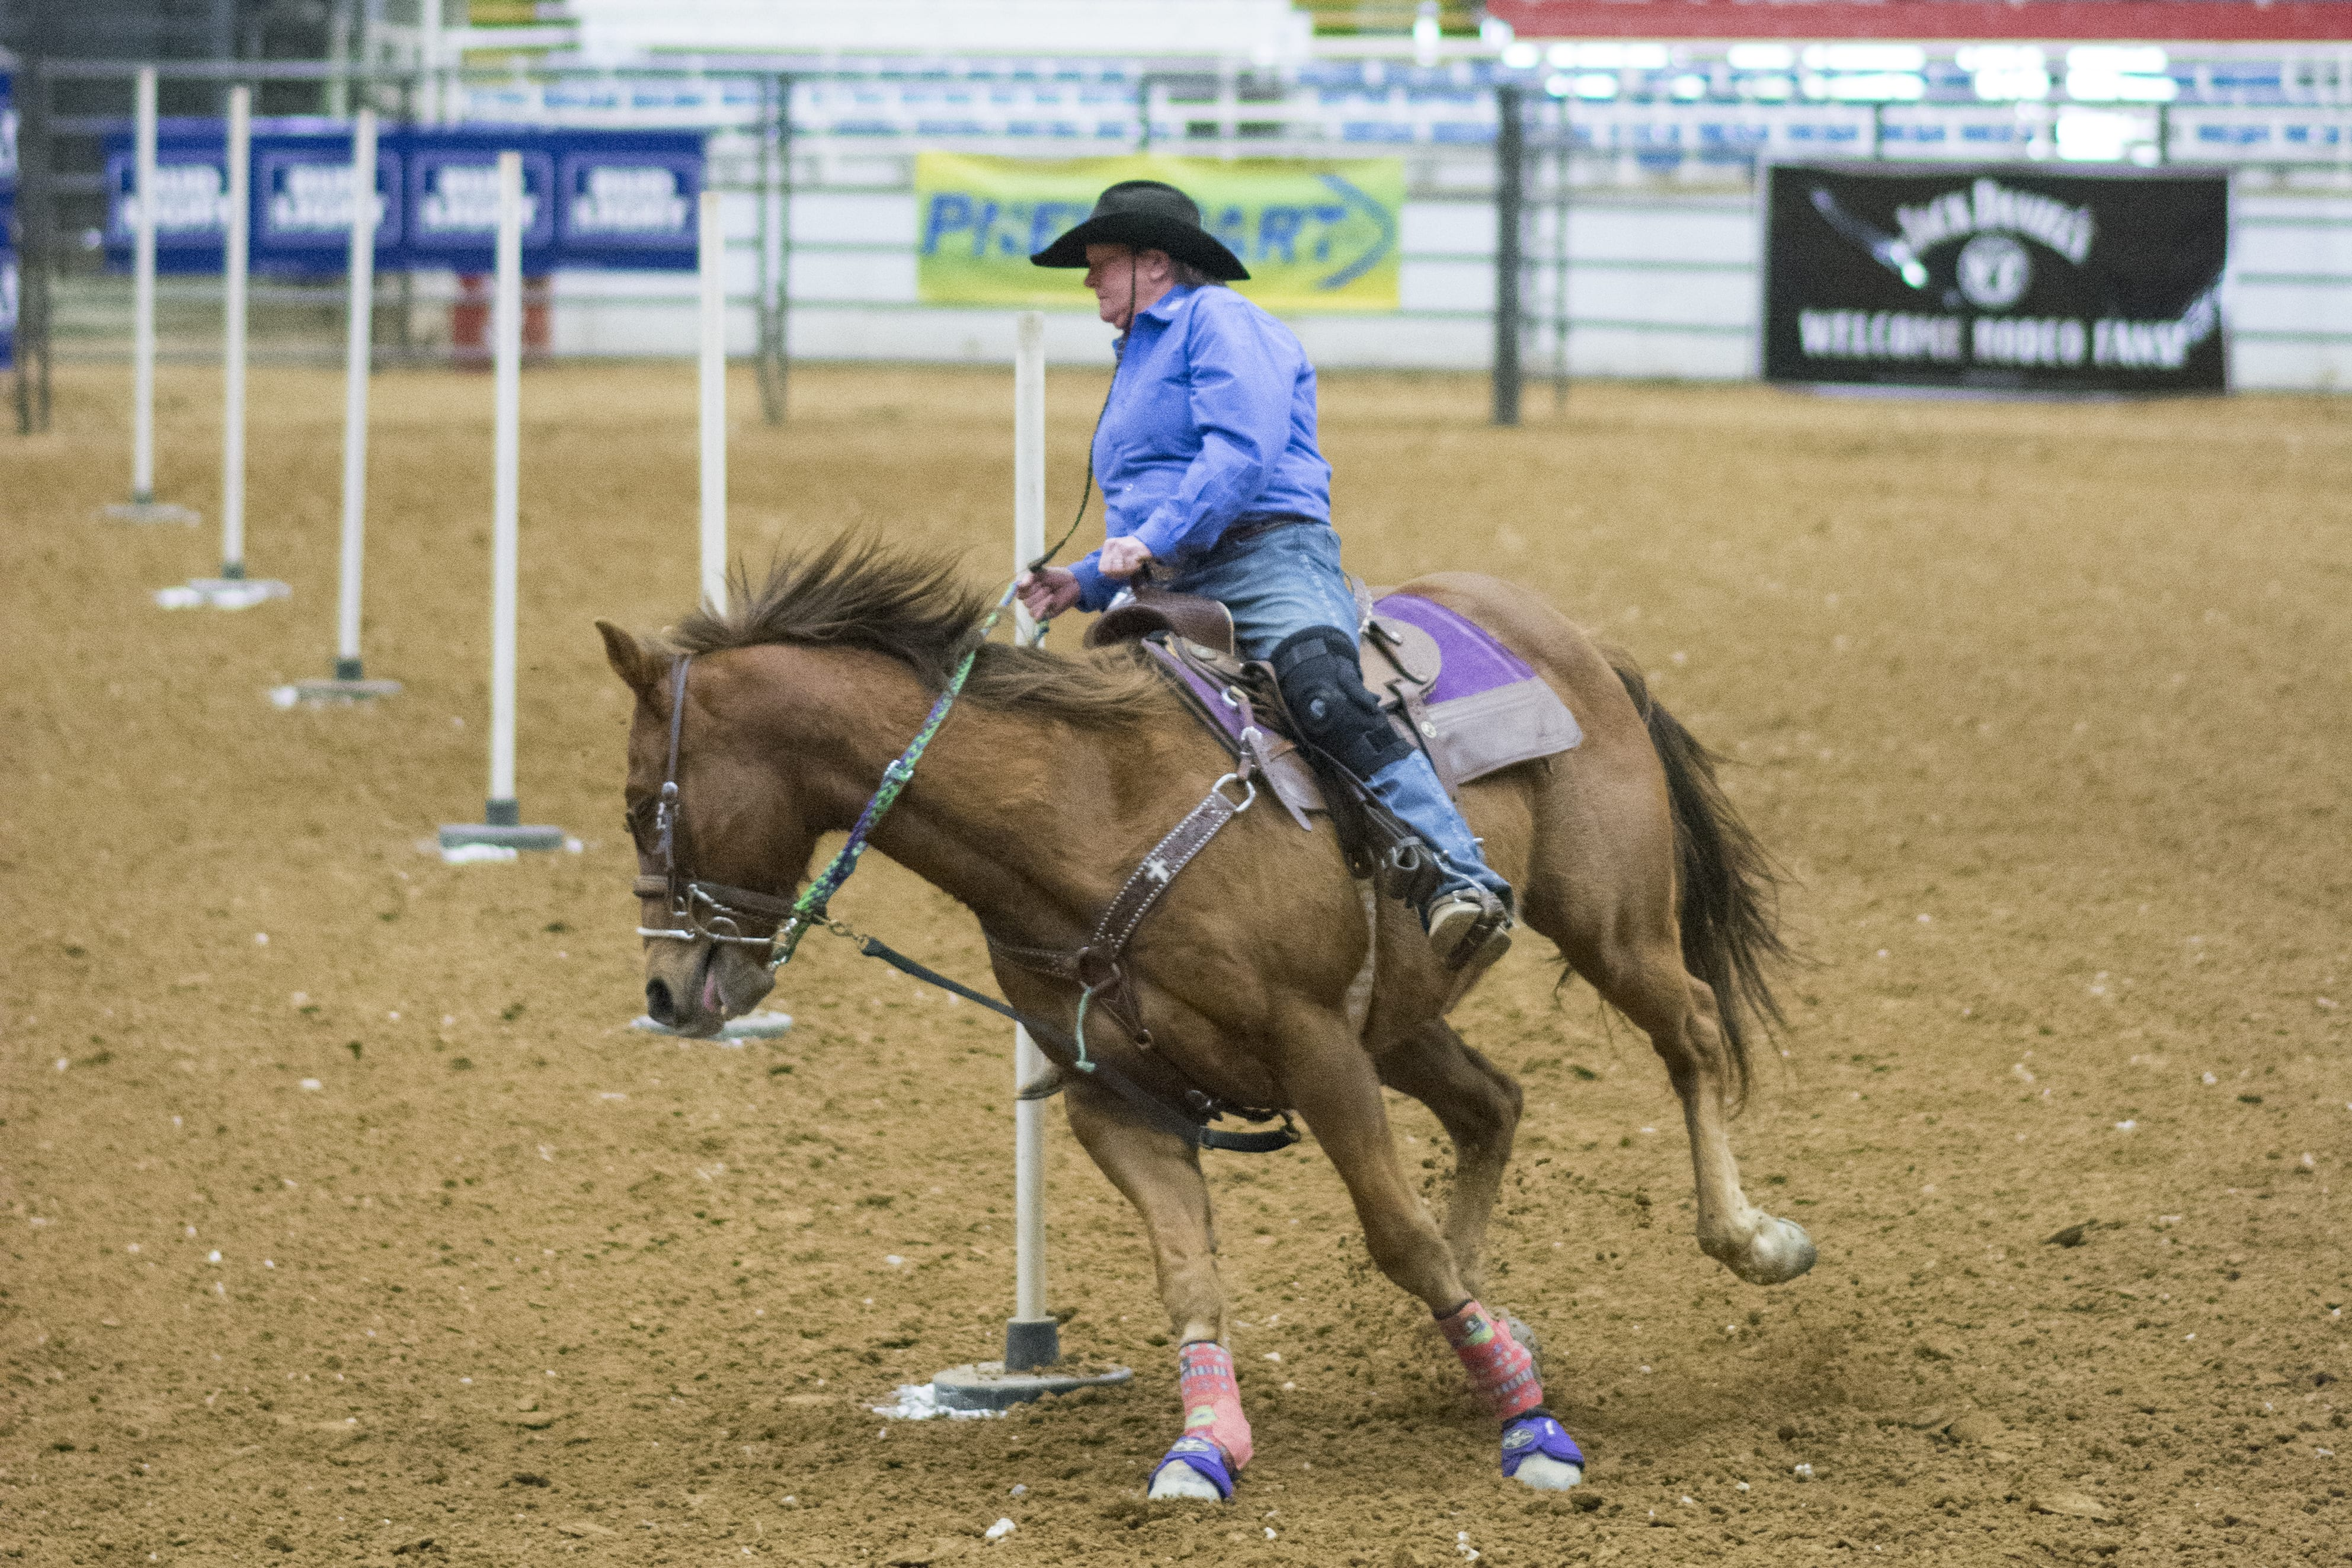 PHOTOS: TGRA's 35th Annual Texas Traditions Rodeo (3 of 6)